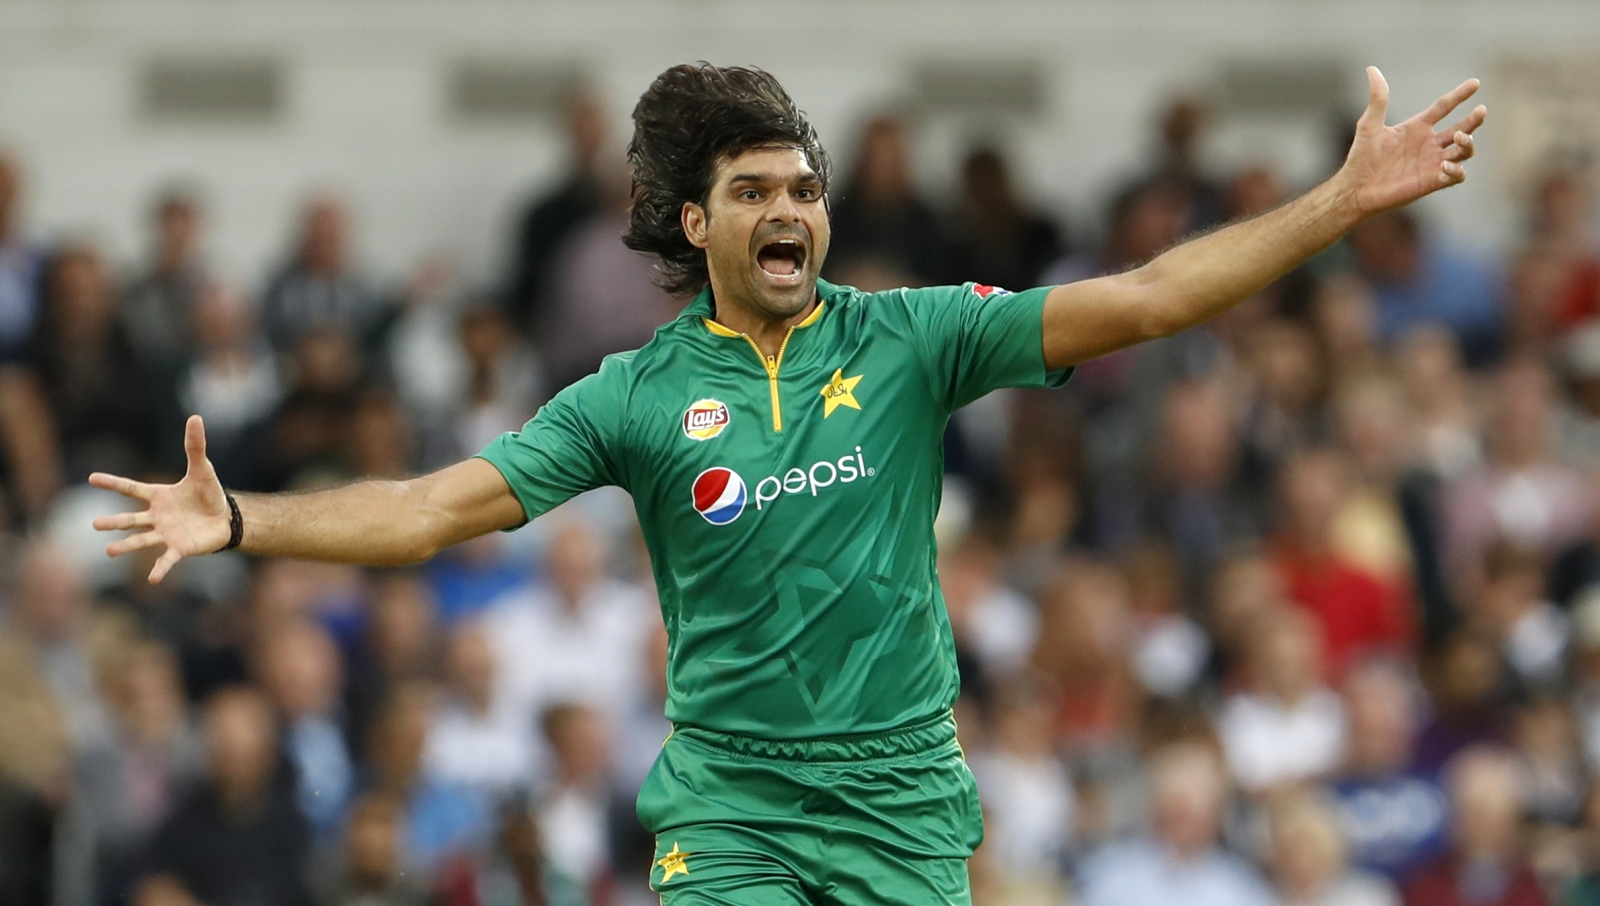 Pakistan bowler Irfan suspended for year over spot-fixing